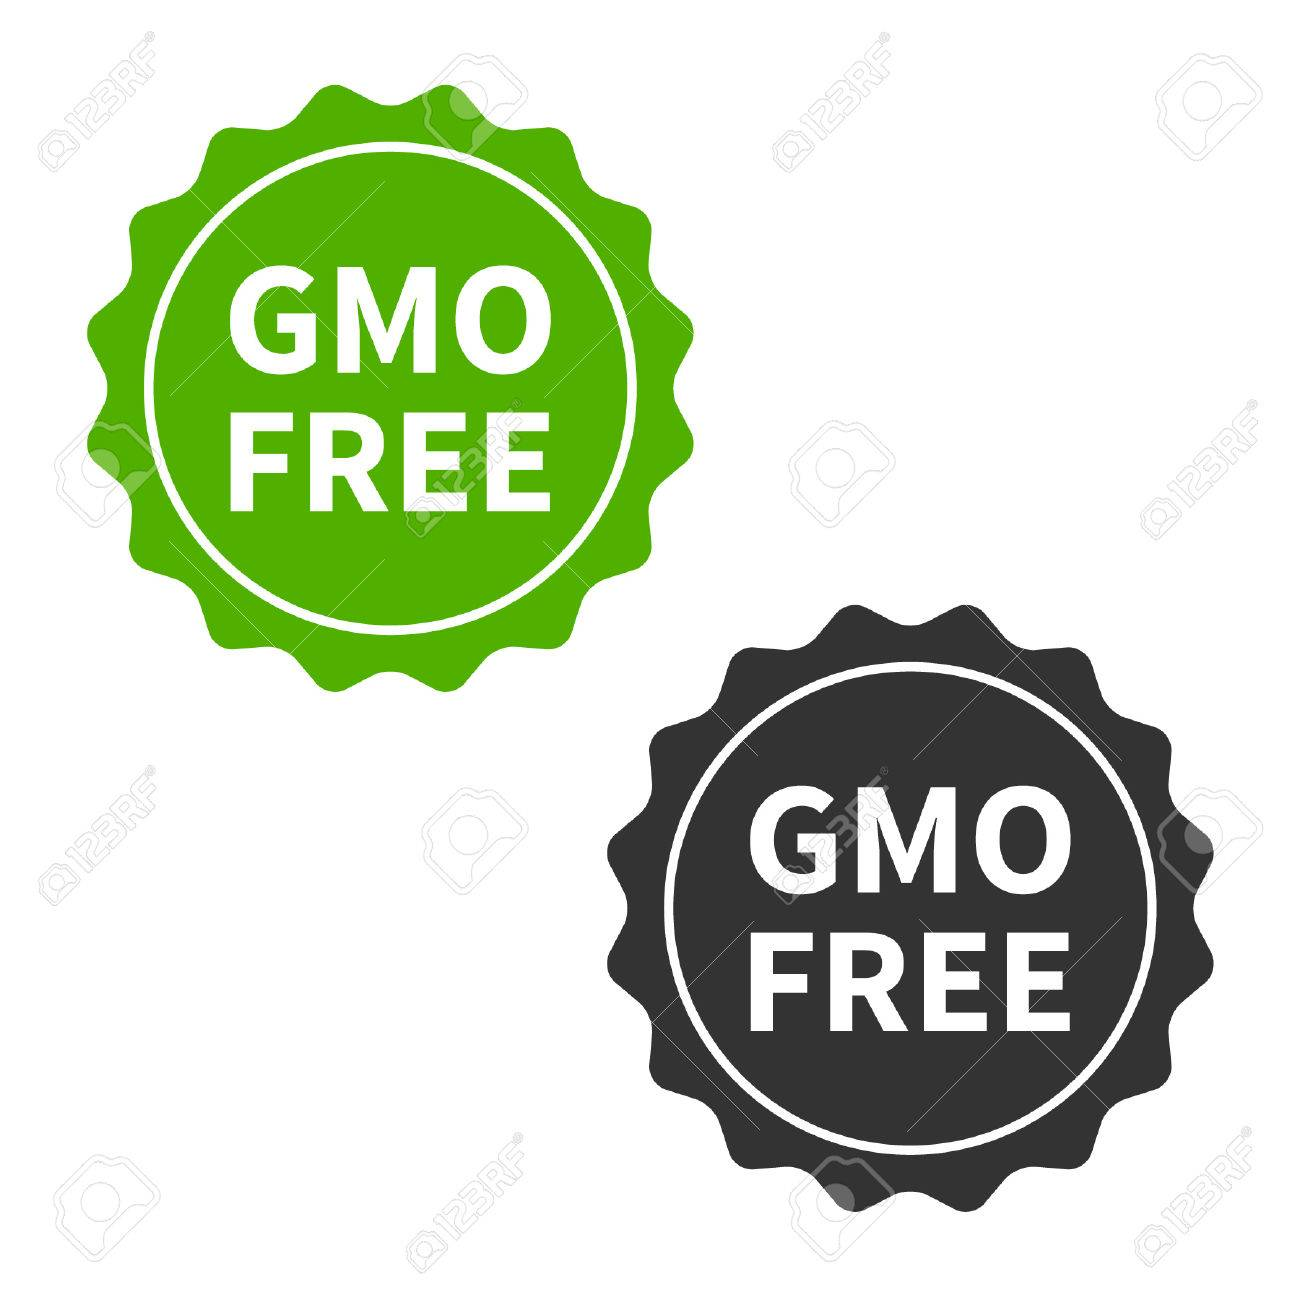 Non gmo or gmo free food packaging seal or sticker flat icon royalty non gmo or gmo free food packaging seal or sticker flat icon stock vector 42273451 buycottarizona Images